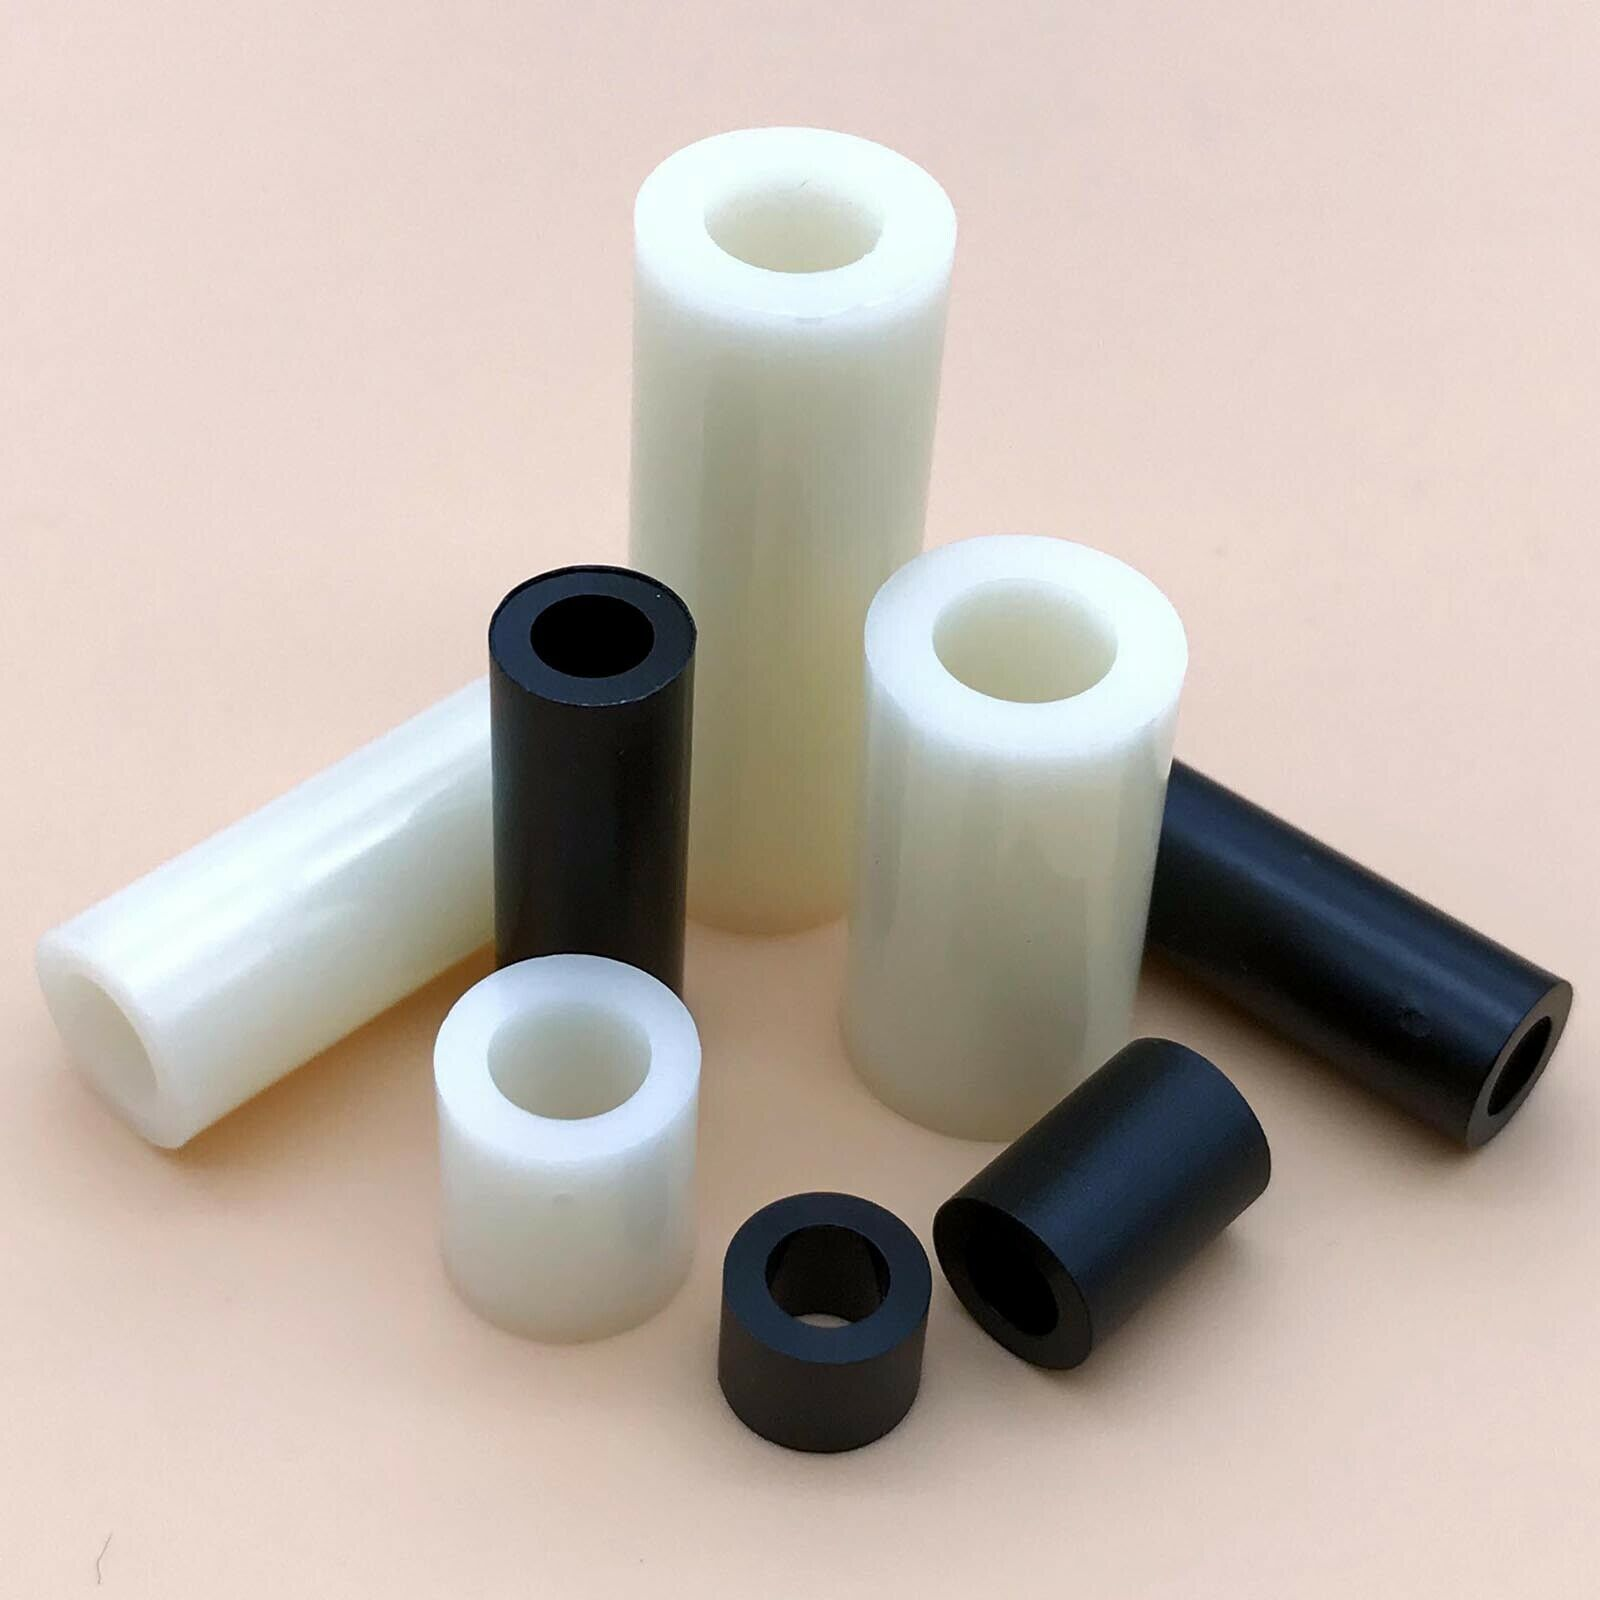 Color : Black colour, Length : 11mm, Size : M4 YJZG 50pcs M3 M4 black or white ABS Rround spacer standoff Nylon Non-Threaded Spacer Round Hollow Standoff Washer